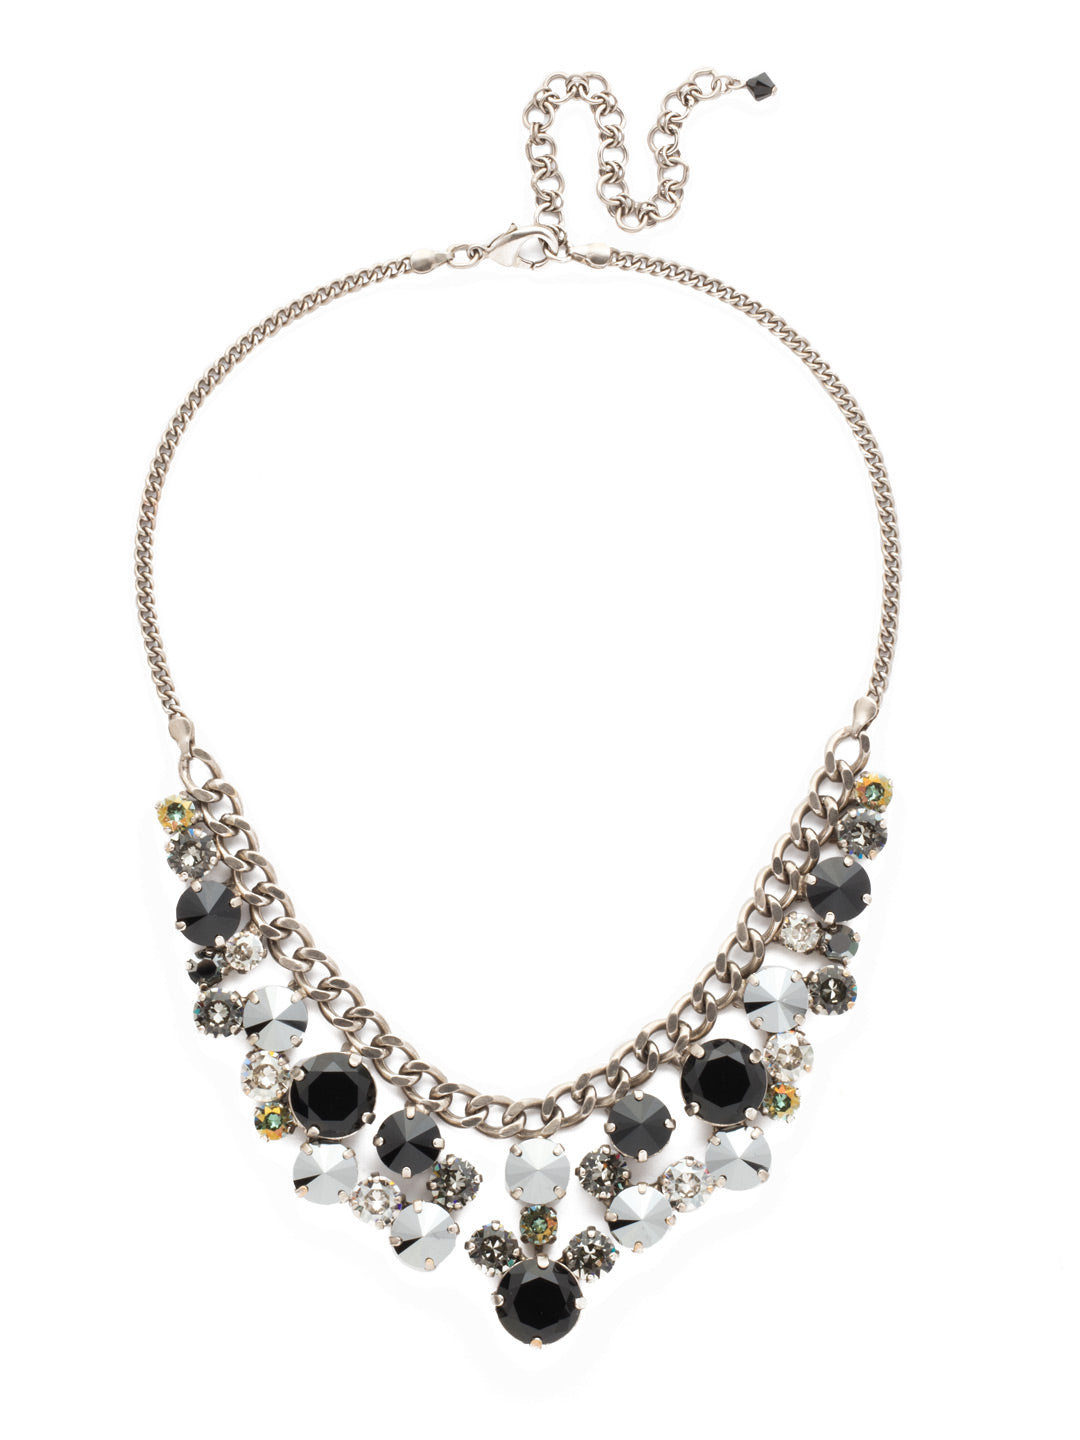 Round Crystal Cluster Bib Necklace - NCW10ASBON